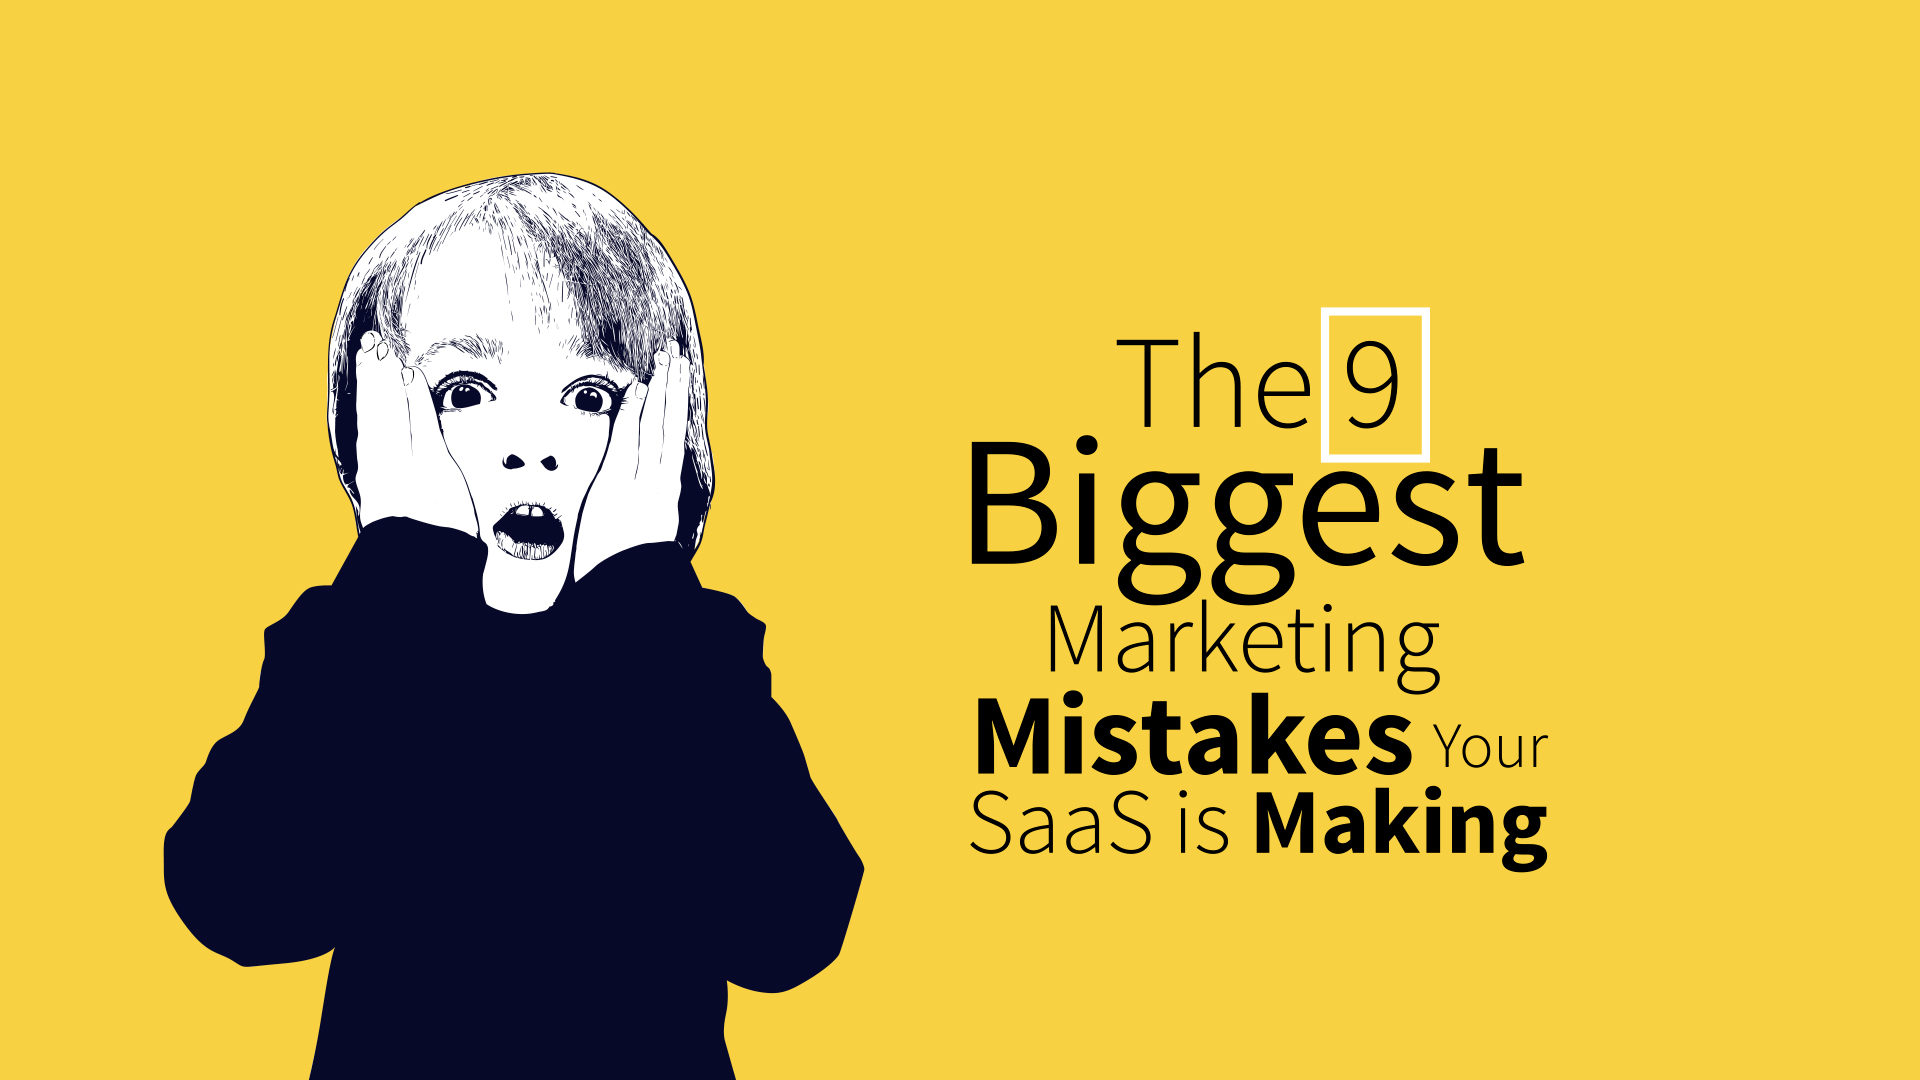 9 Biggest SaaS Marketing Mistakes to Avoid